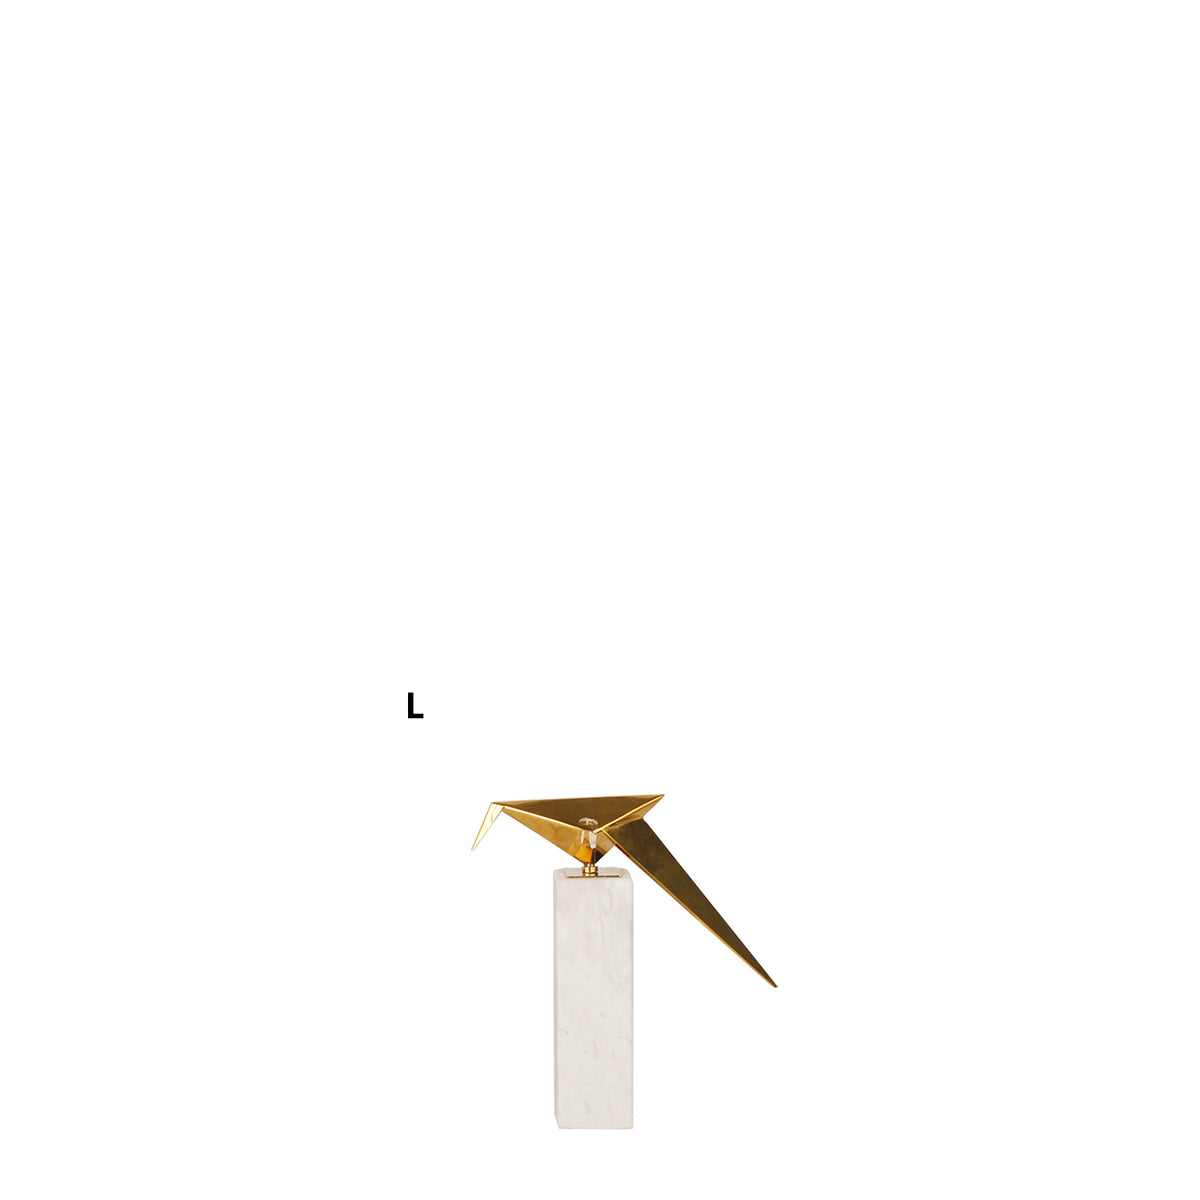 Birds on Stand - objects of interest